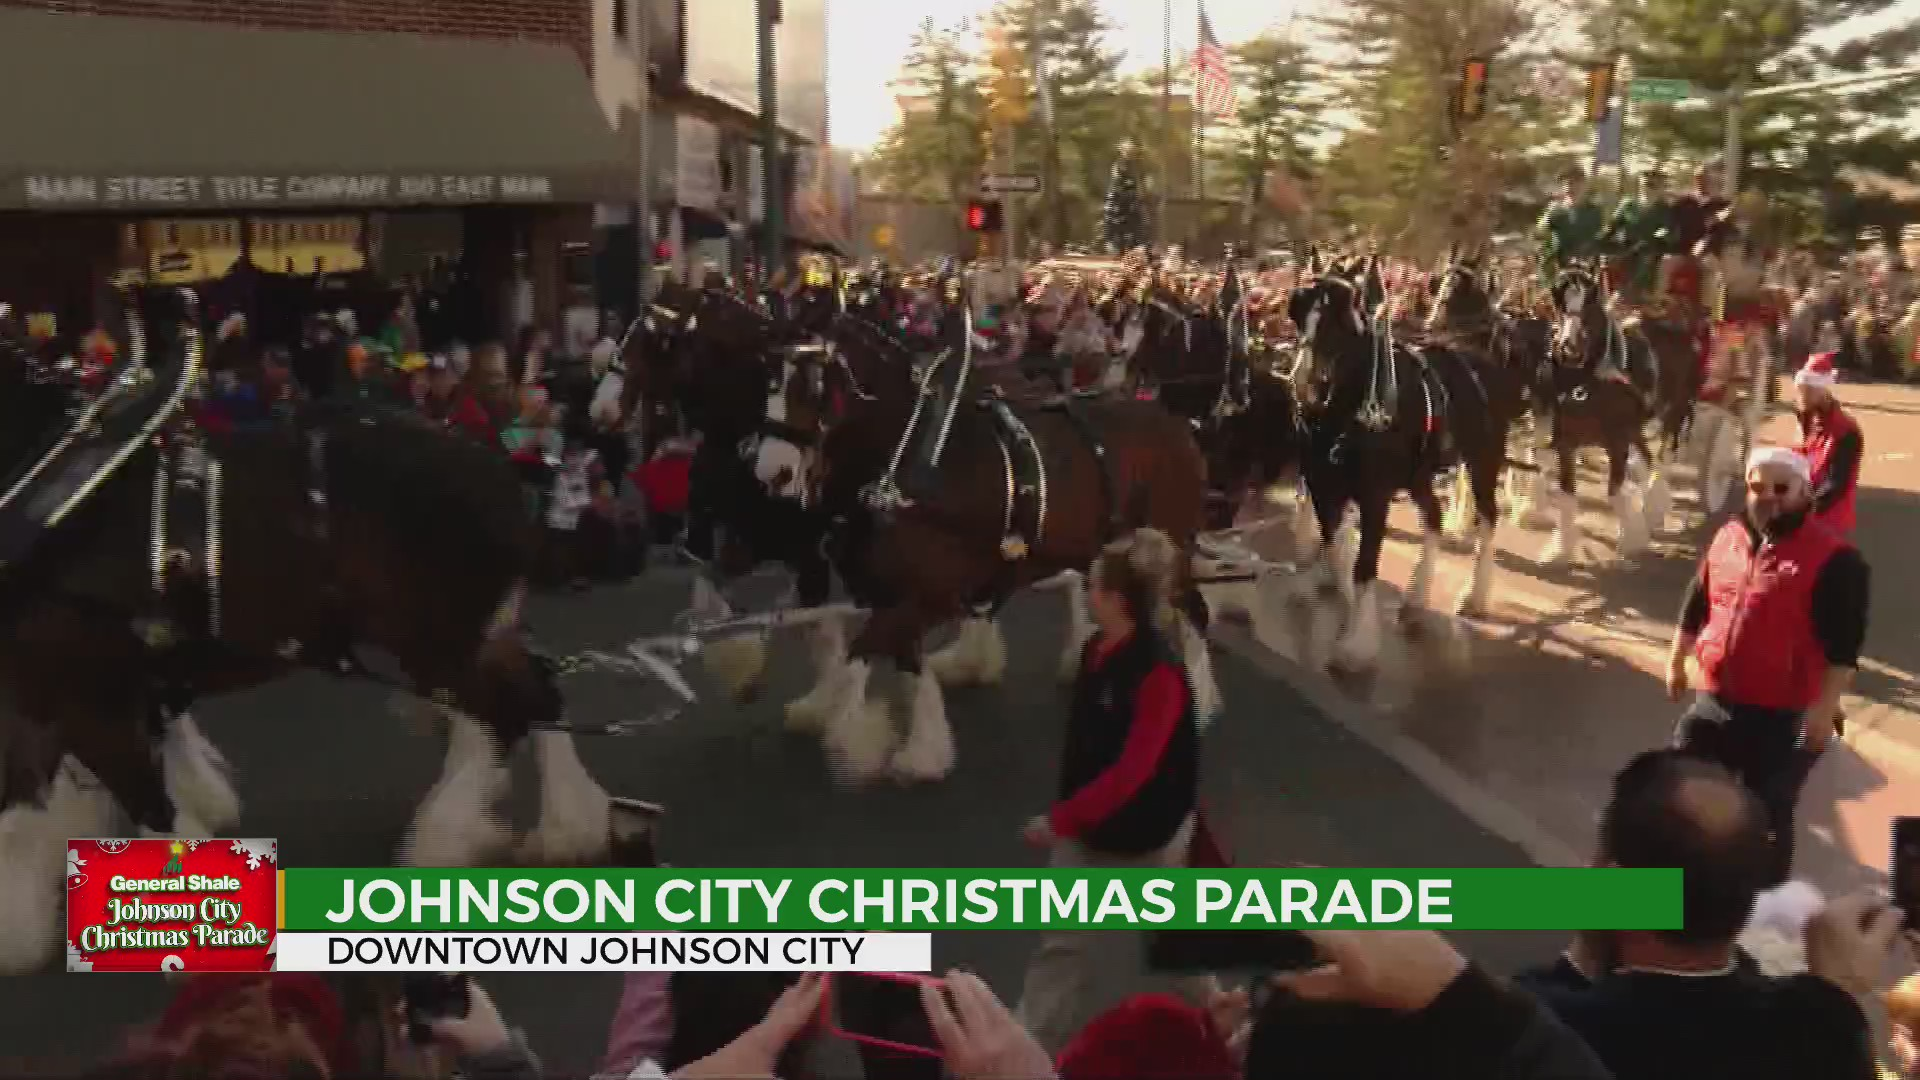 Johnson City Tn Christmas Parade 2020 WATCH: Johnson City Christmas Parade & Budweiser Clydesdales